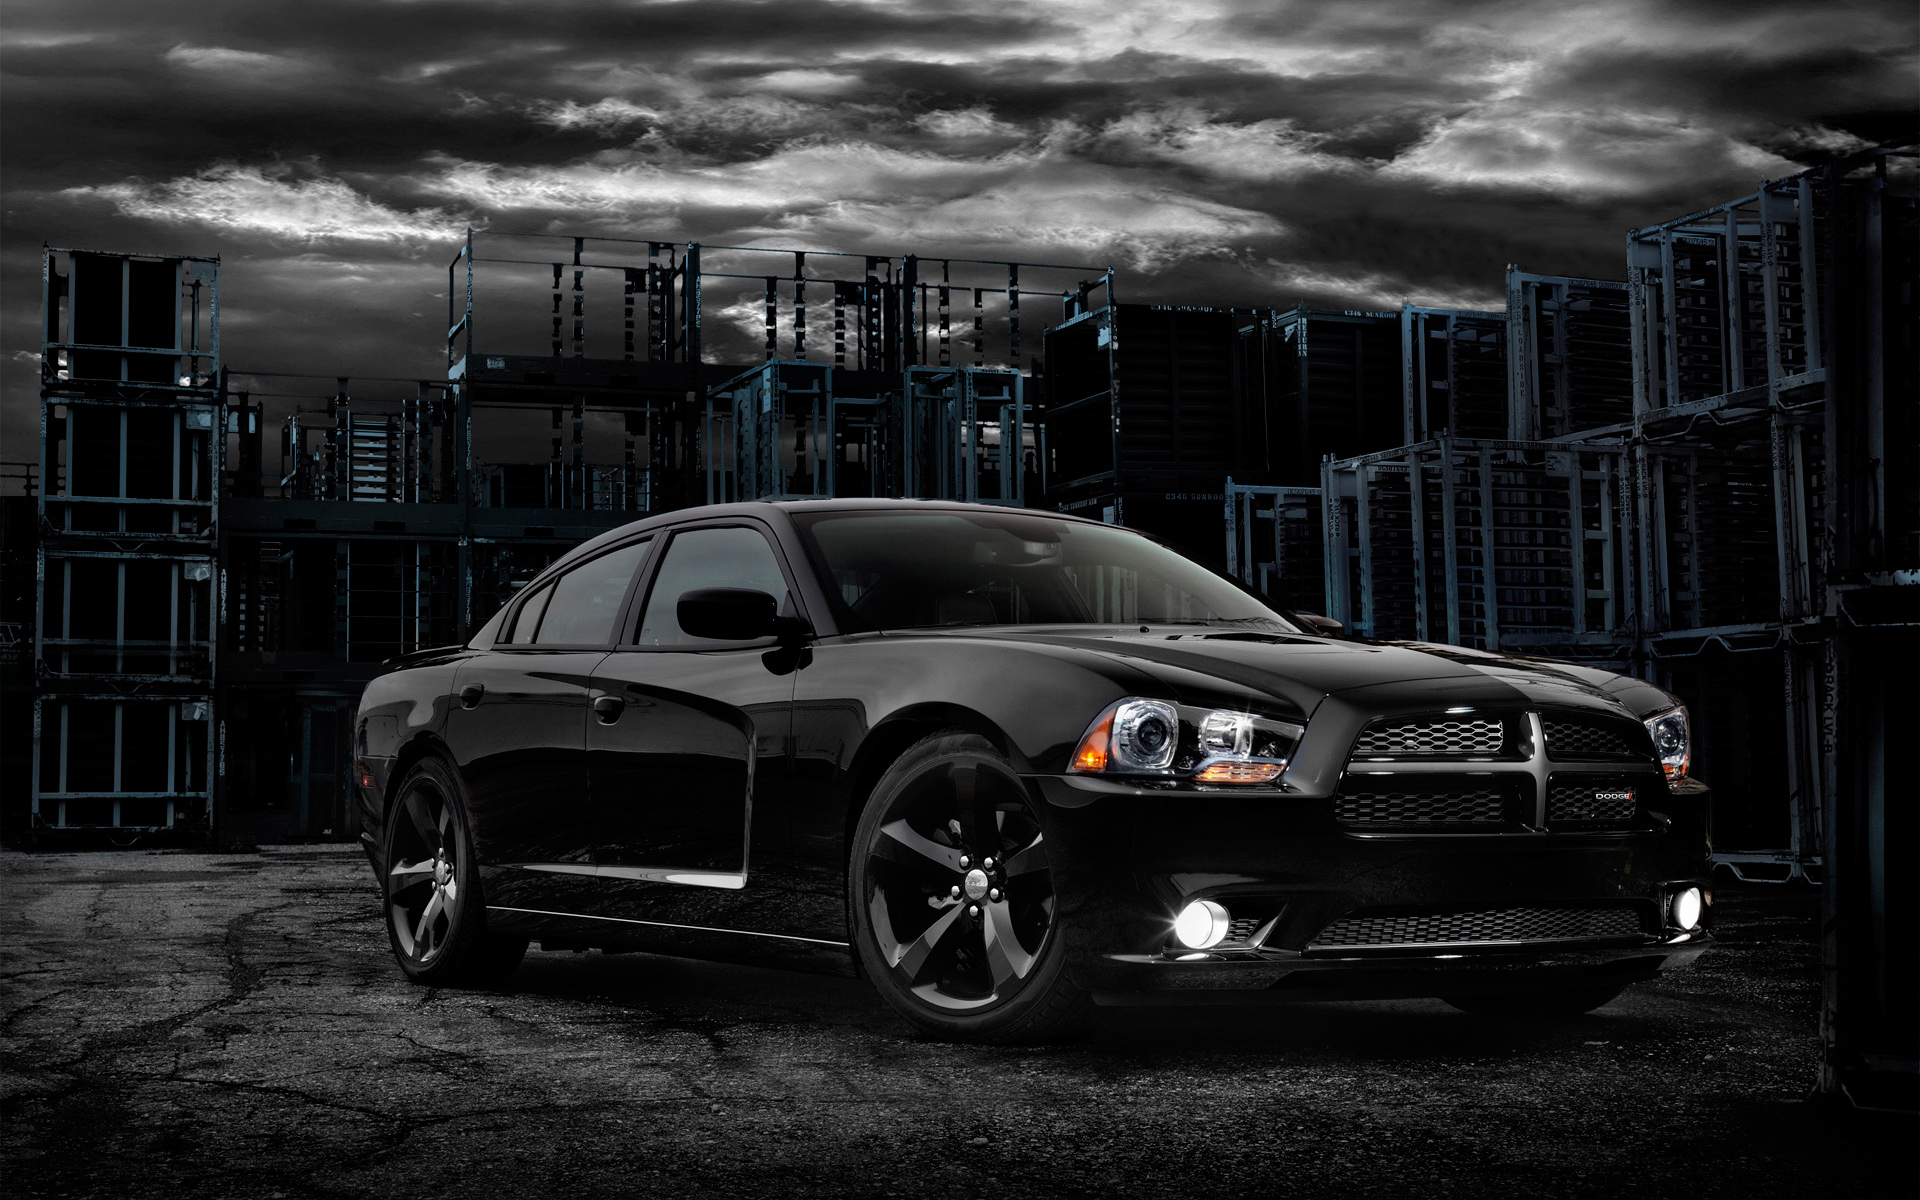 2012 Dodge Charger 2 Wallpaper HD Car Wallpapers 1920x1200